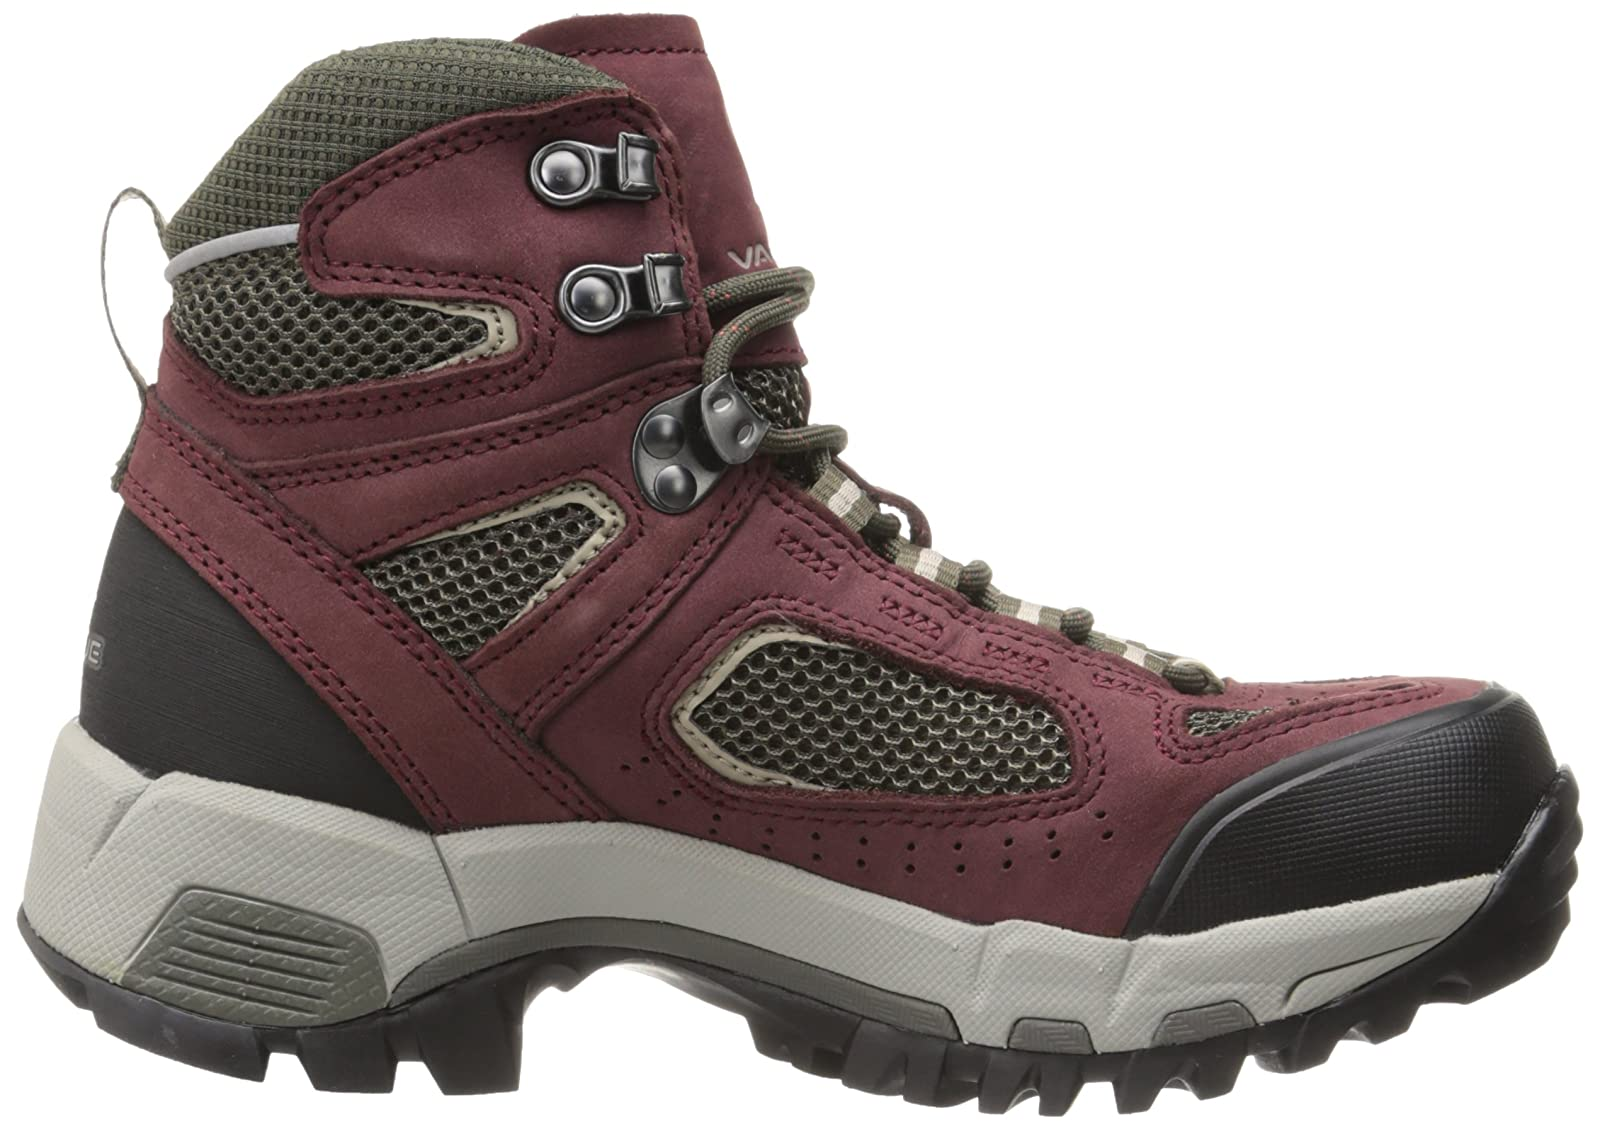 Vasque Women's Breeze 2.0 Gore-Tex Hiking Boot Little Kid US - 7